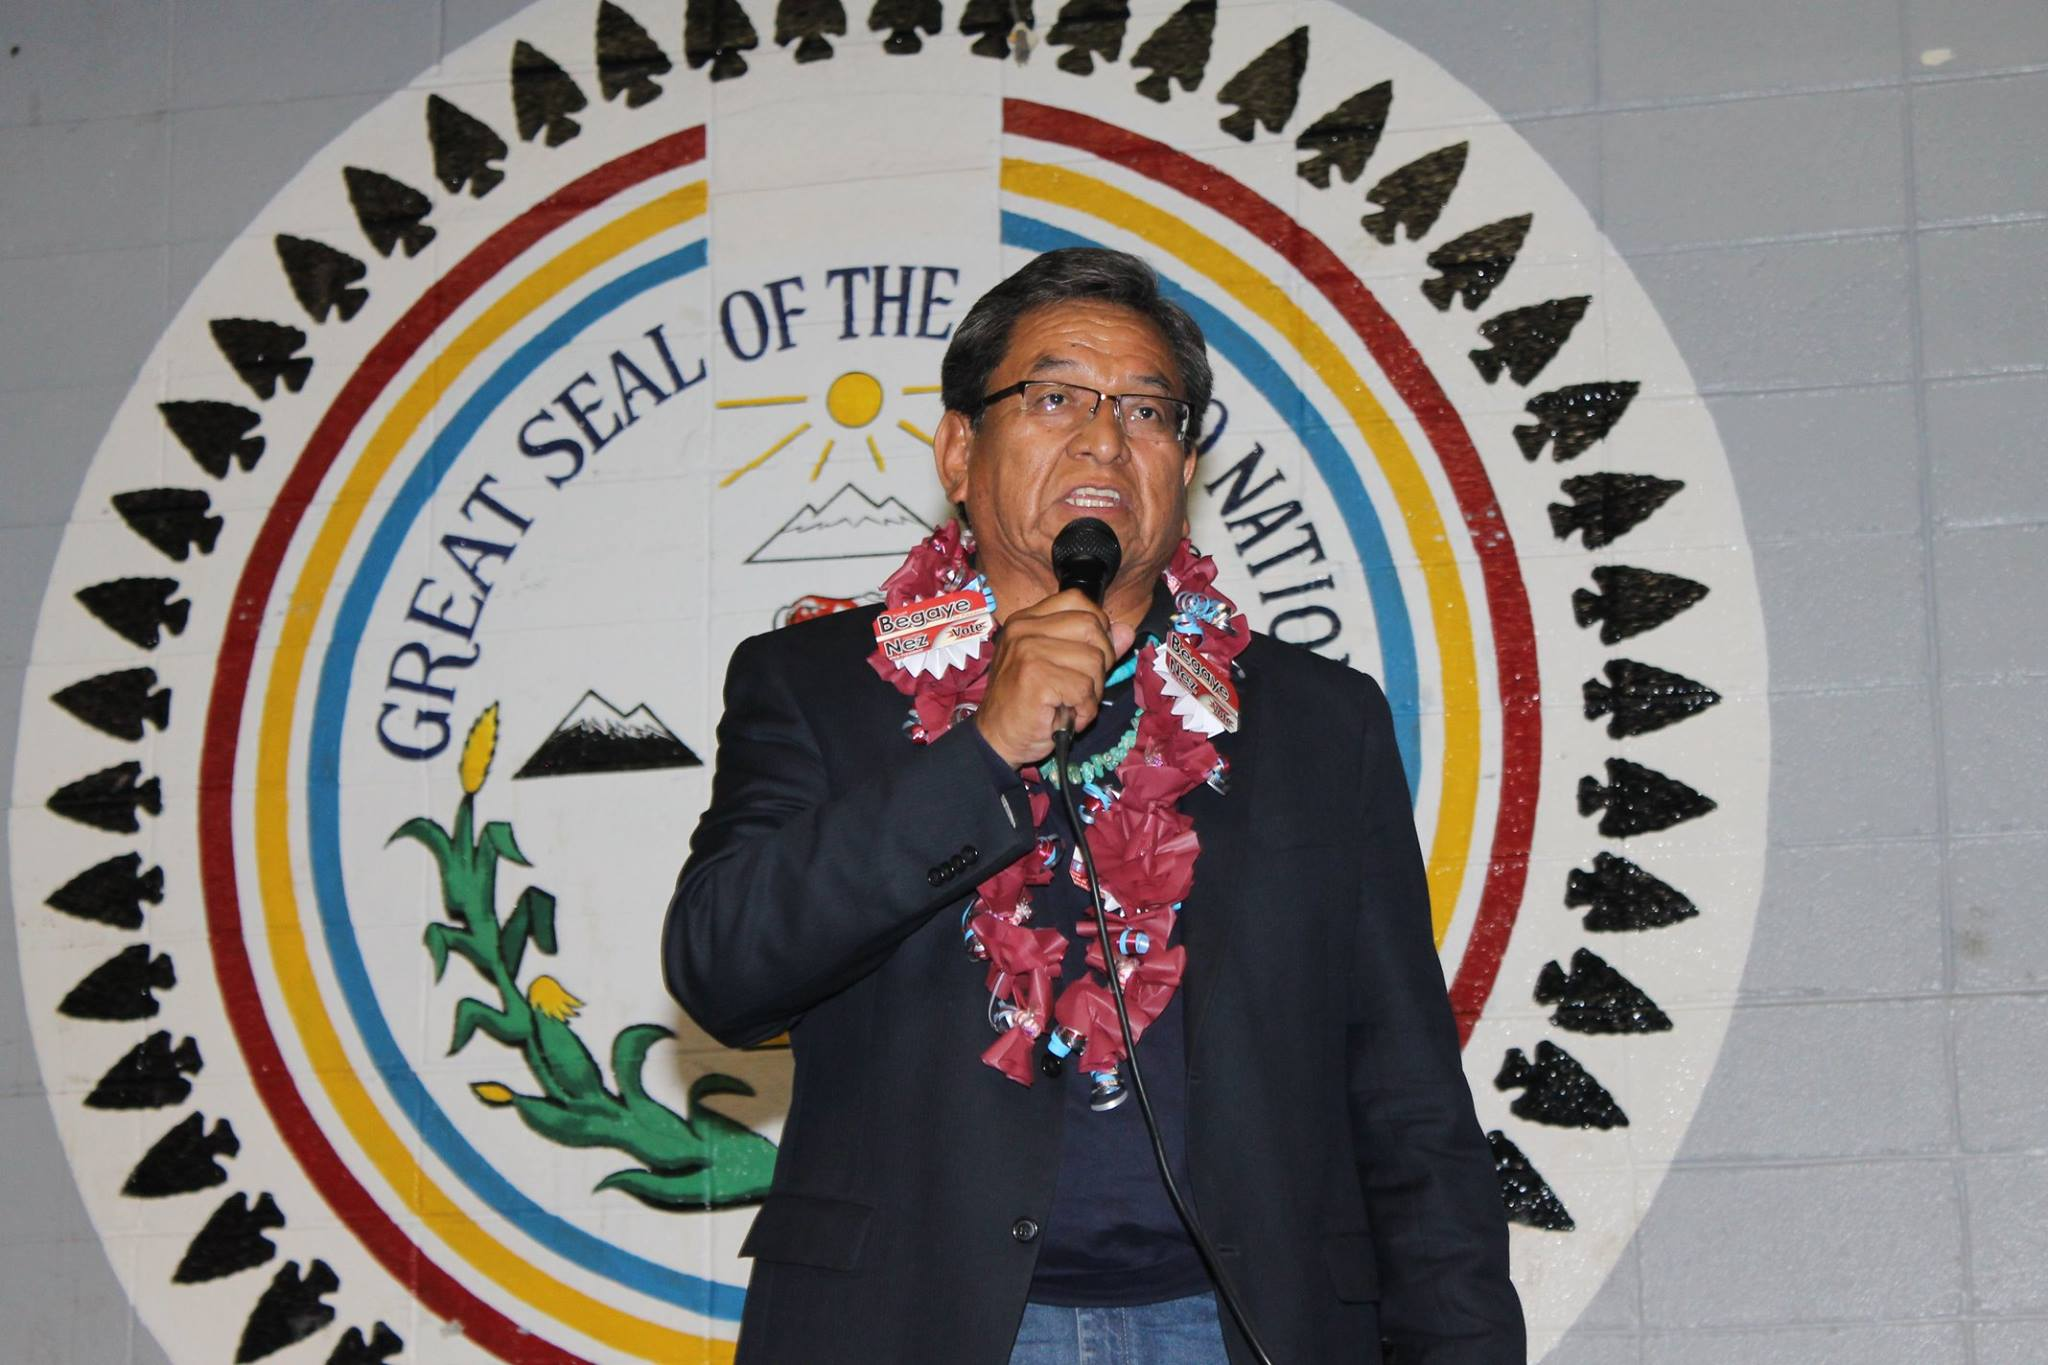 Editorial: Russell Begaye faces hurdles as Navajo Nation's leader